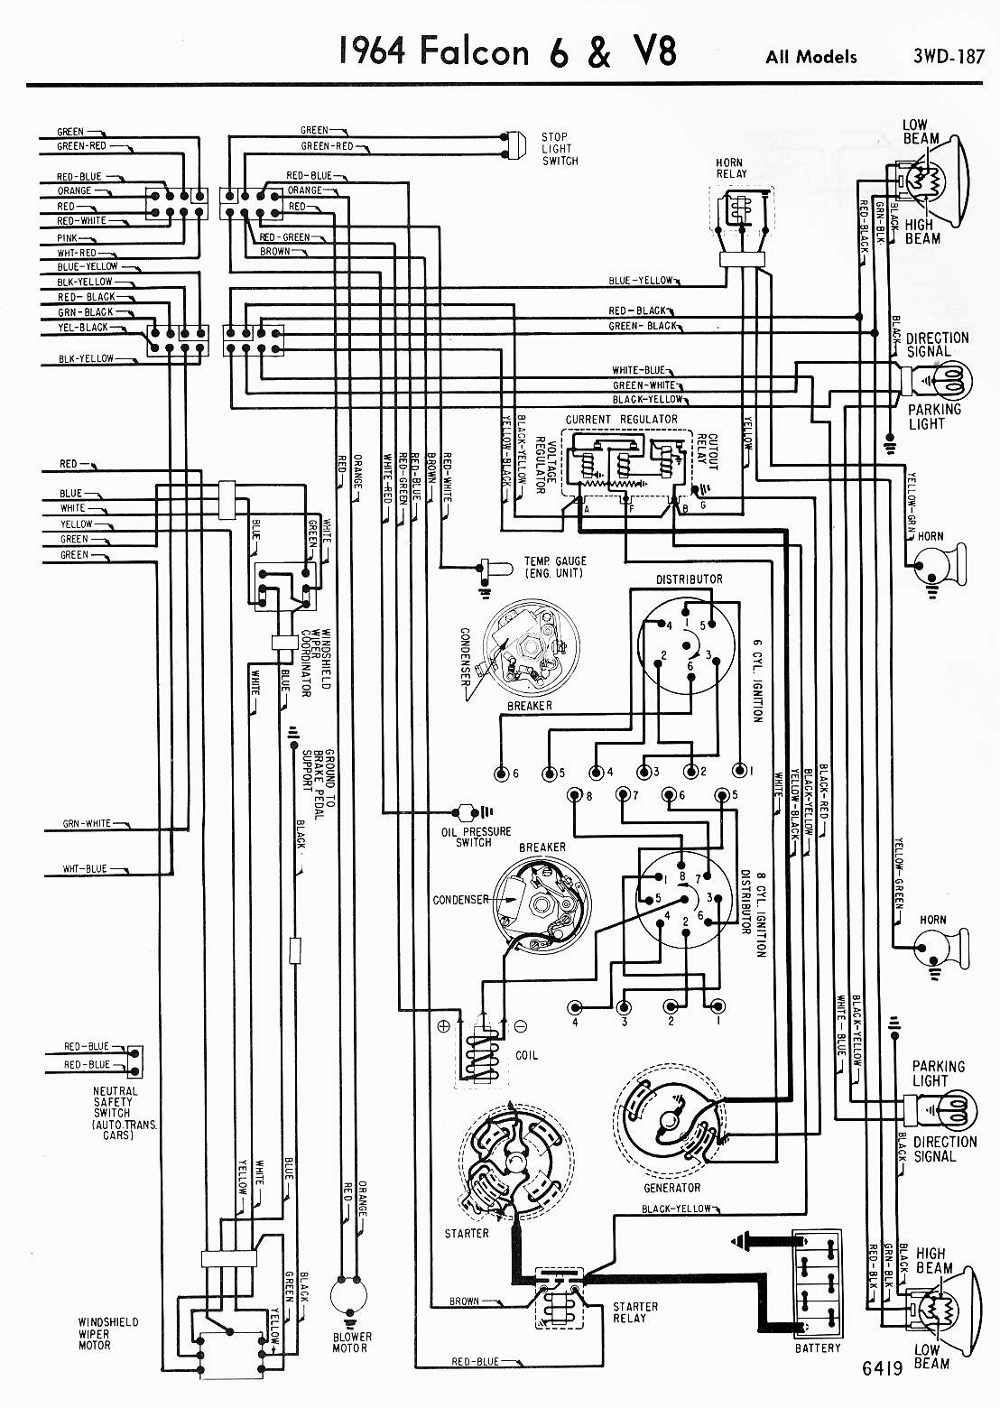 ba xr6 icc wiring diagram fender 5 way super switch falcon wes vipie de for 1964 ford diagrams instruct rh 9 nadine wolf photoart engine